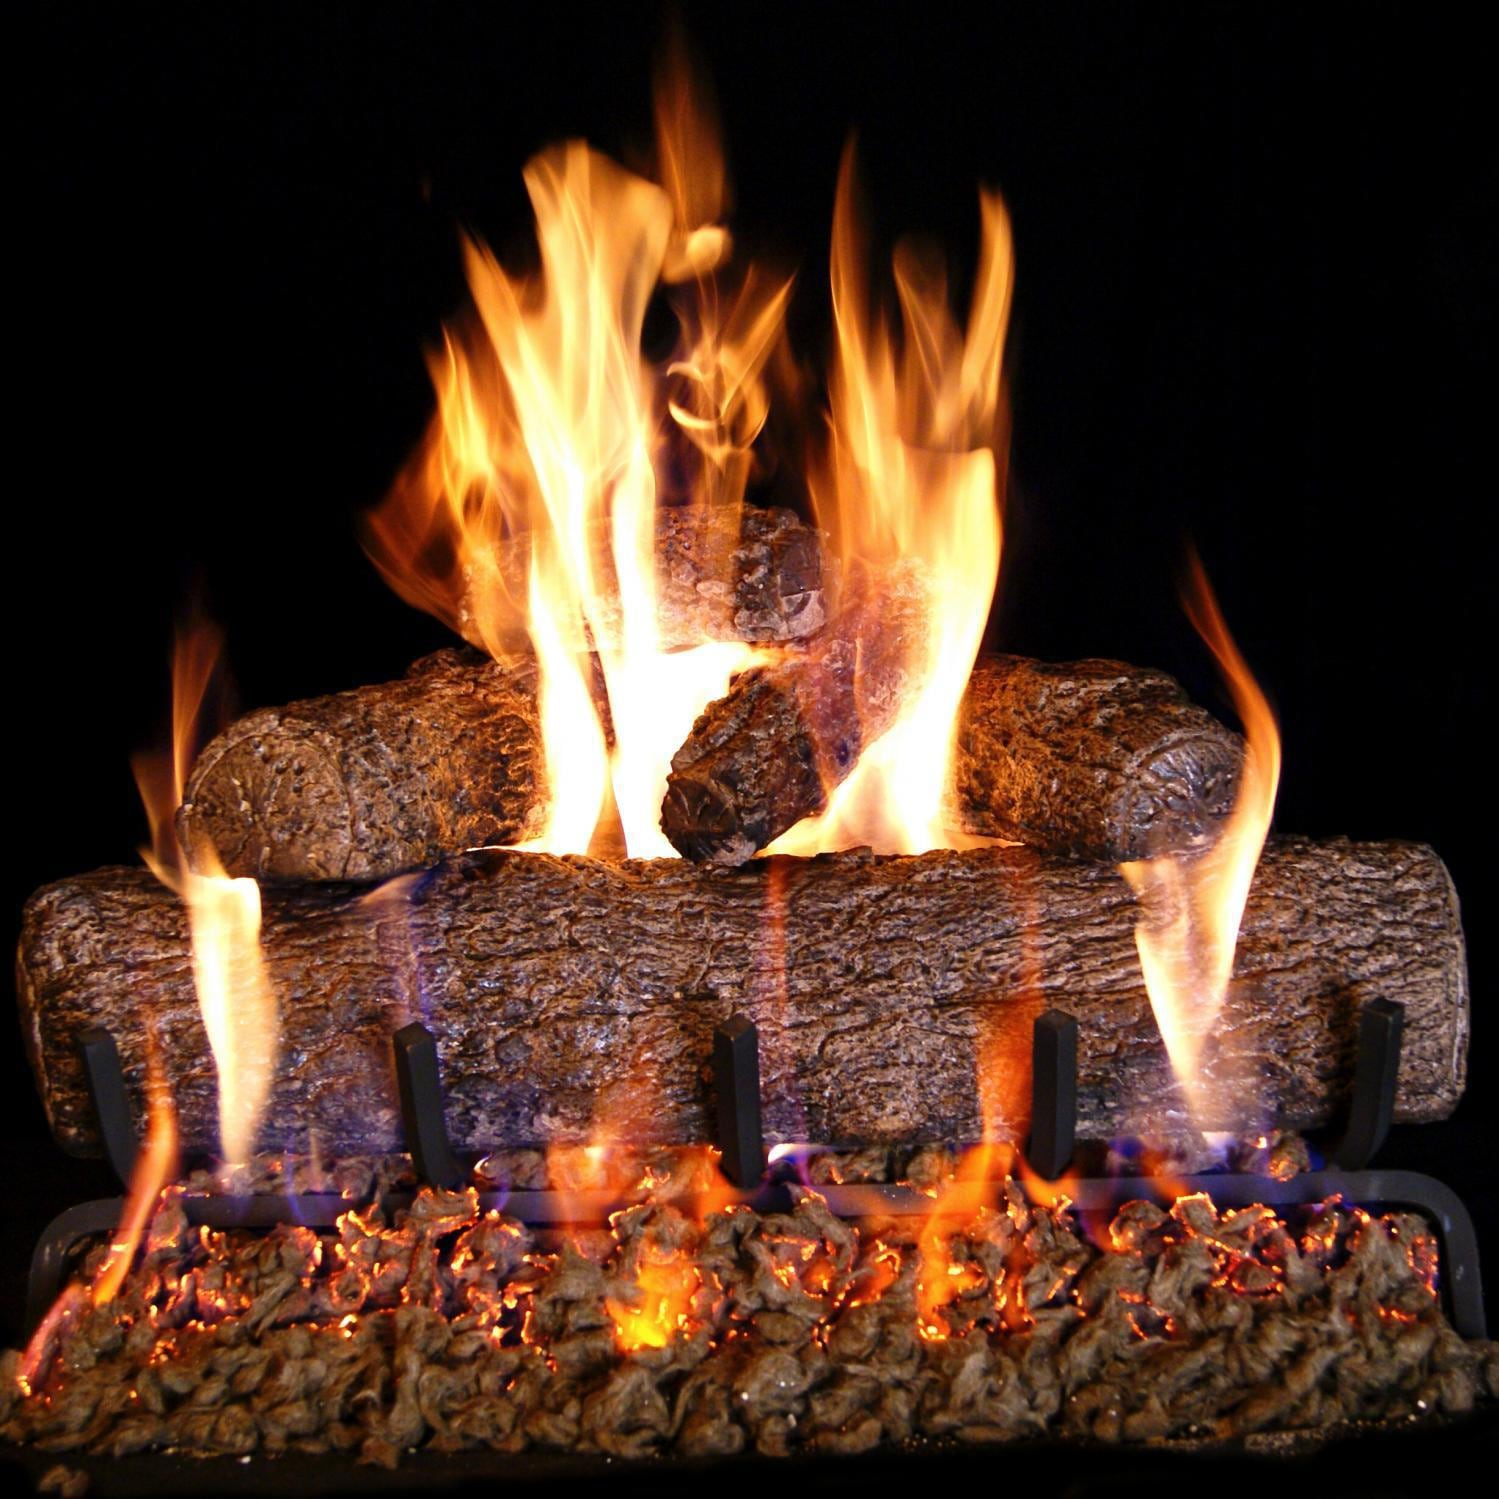 Ceramic Logs For Gas Fireplace Vented Gas Logs Gas Log Sets For Vented Fireplaces Gas Log Guys